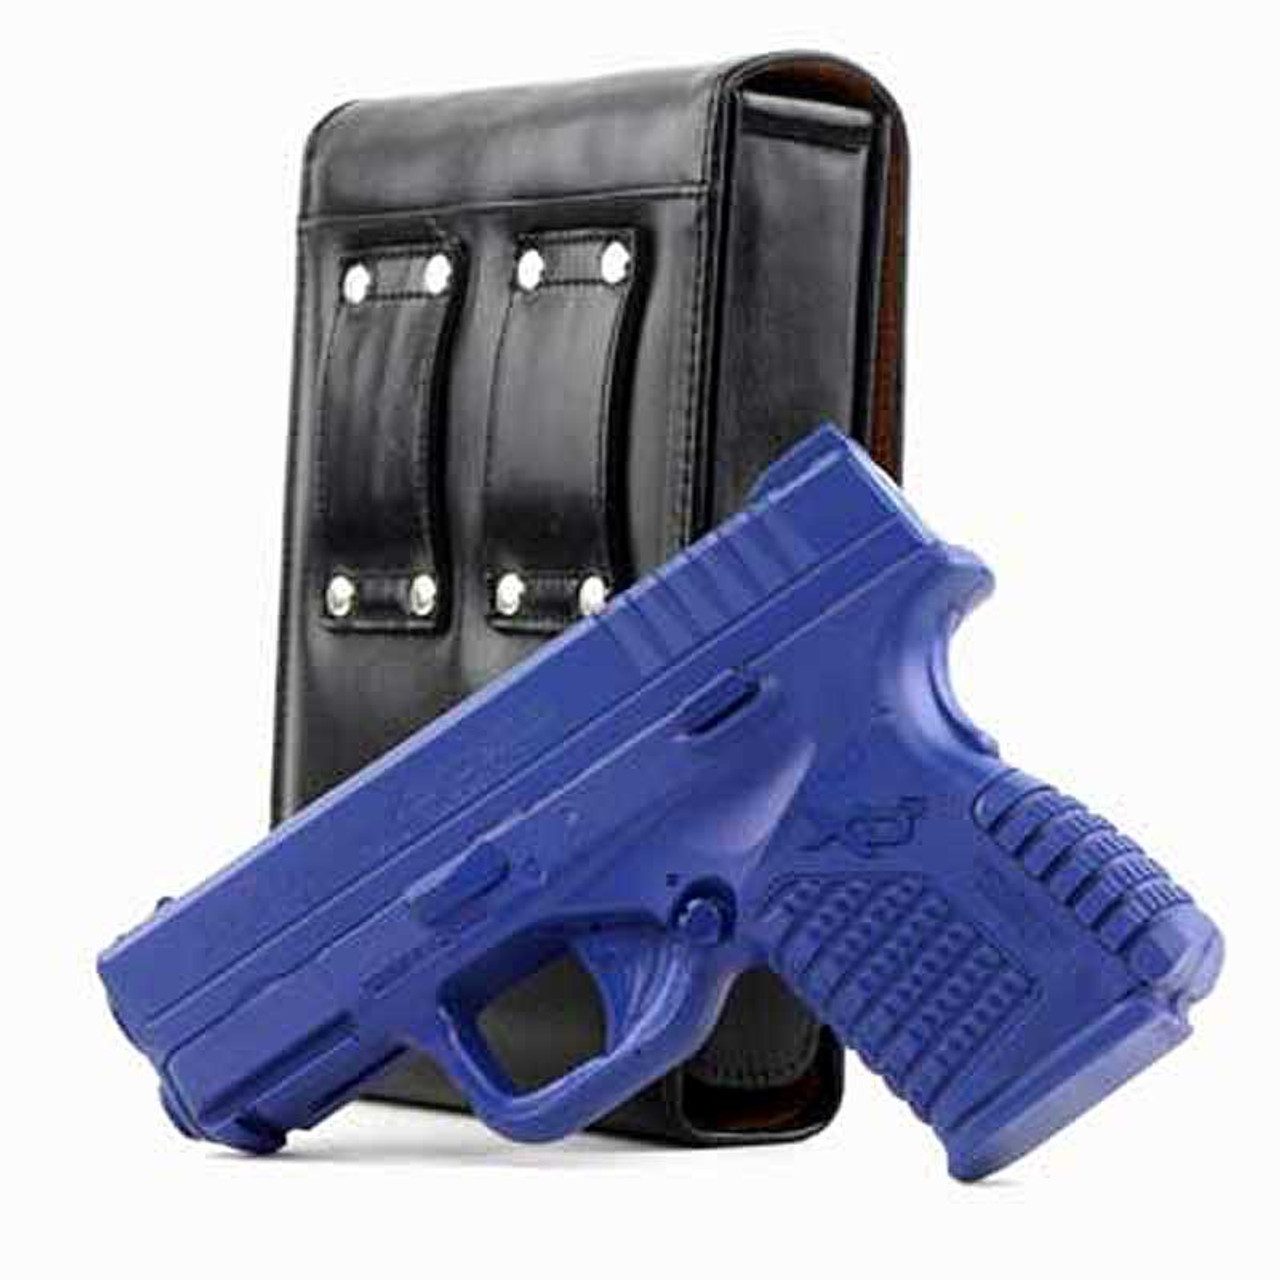 Springfield XDS 45 Concealed Carry Holster (Belt Loop)